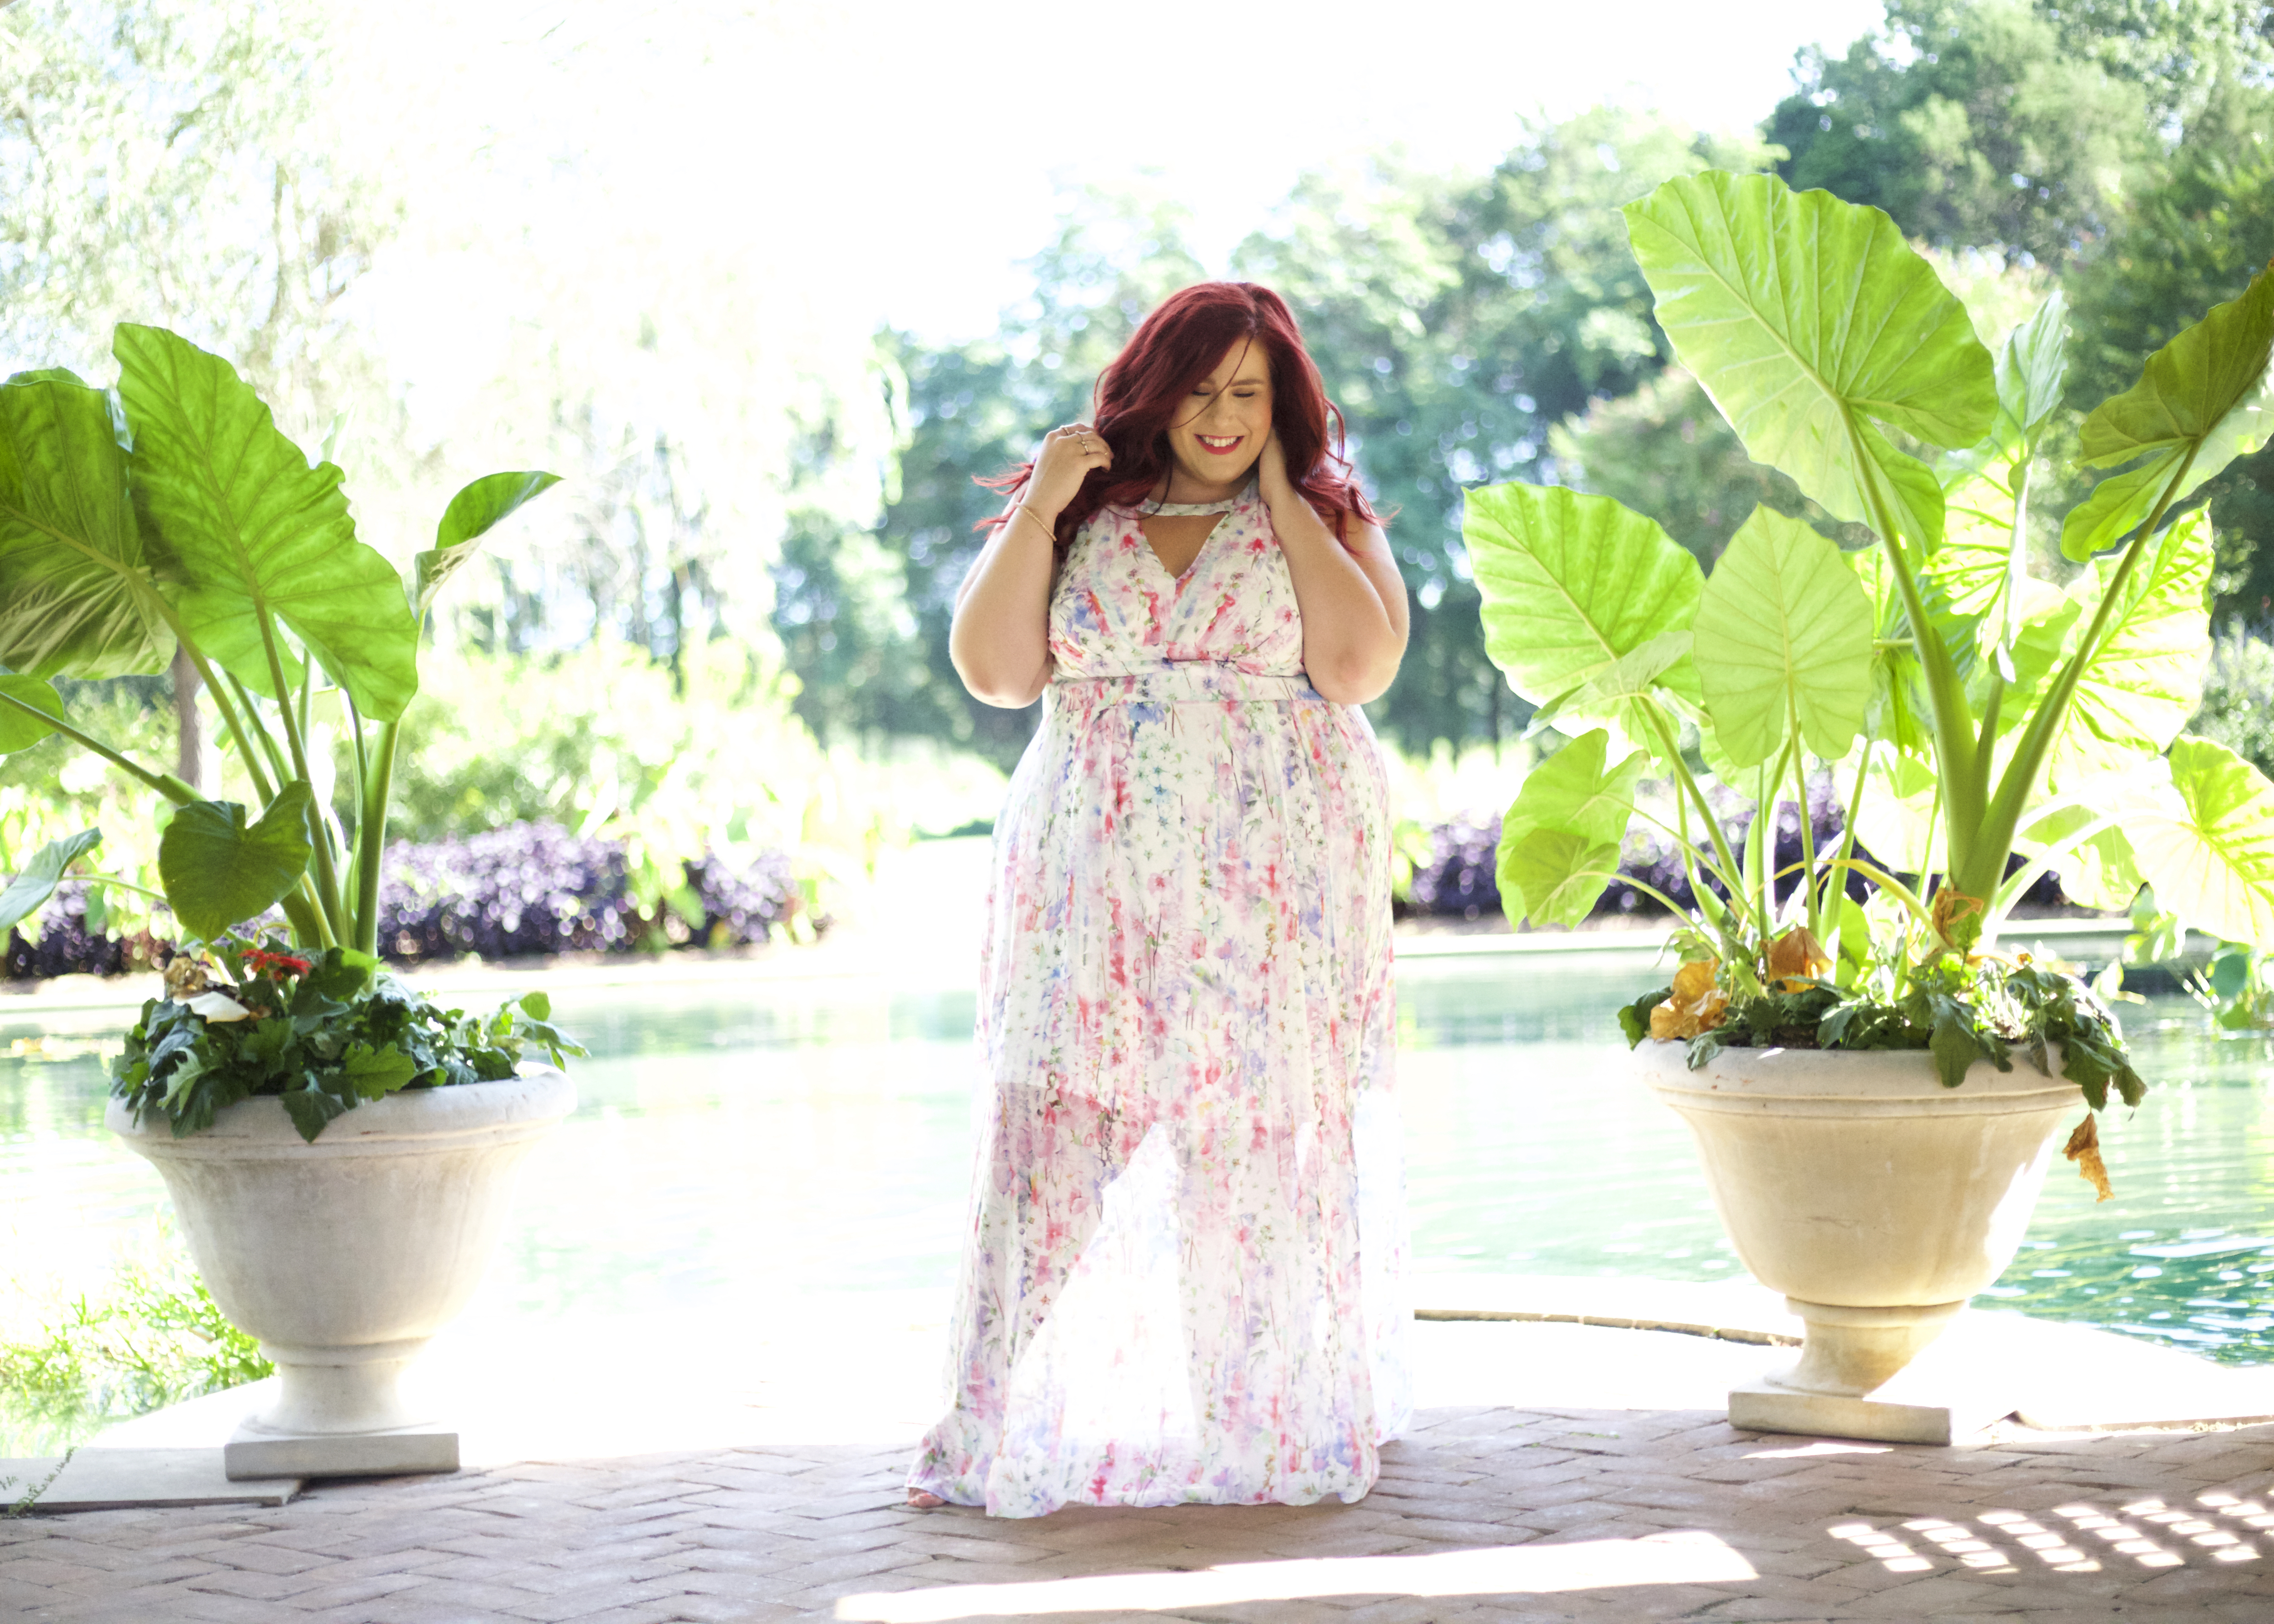 @curves_curlsandclothes's cover photo for 'Dreamy Floral Plus Size Maxi Dress | Curves, Curls and Clothes'